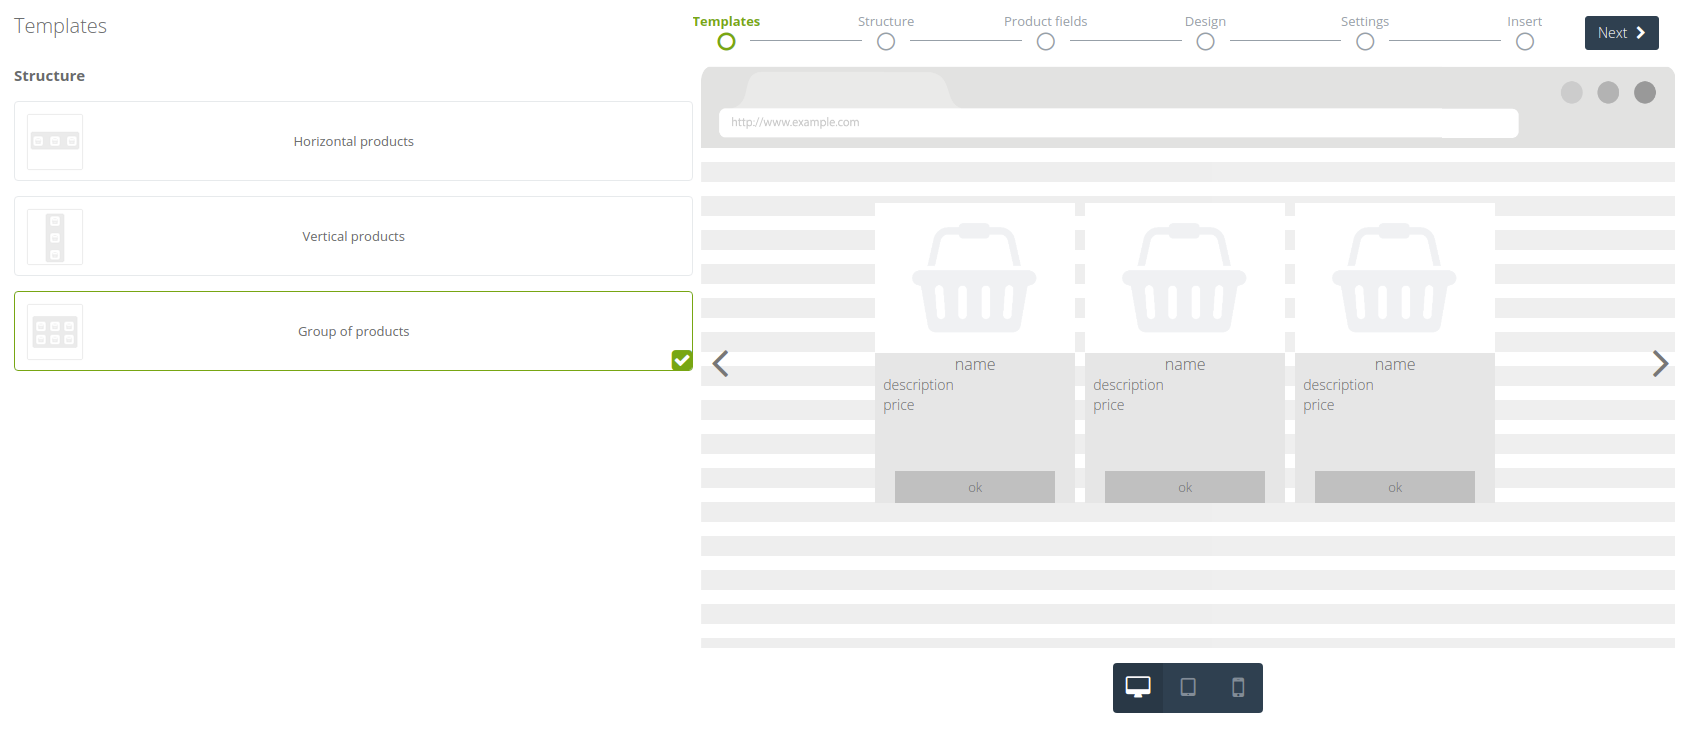 Product Recommendation Frame